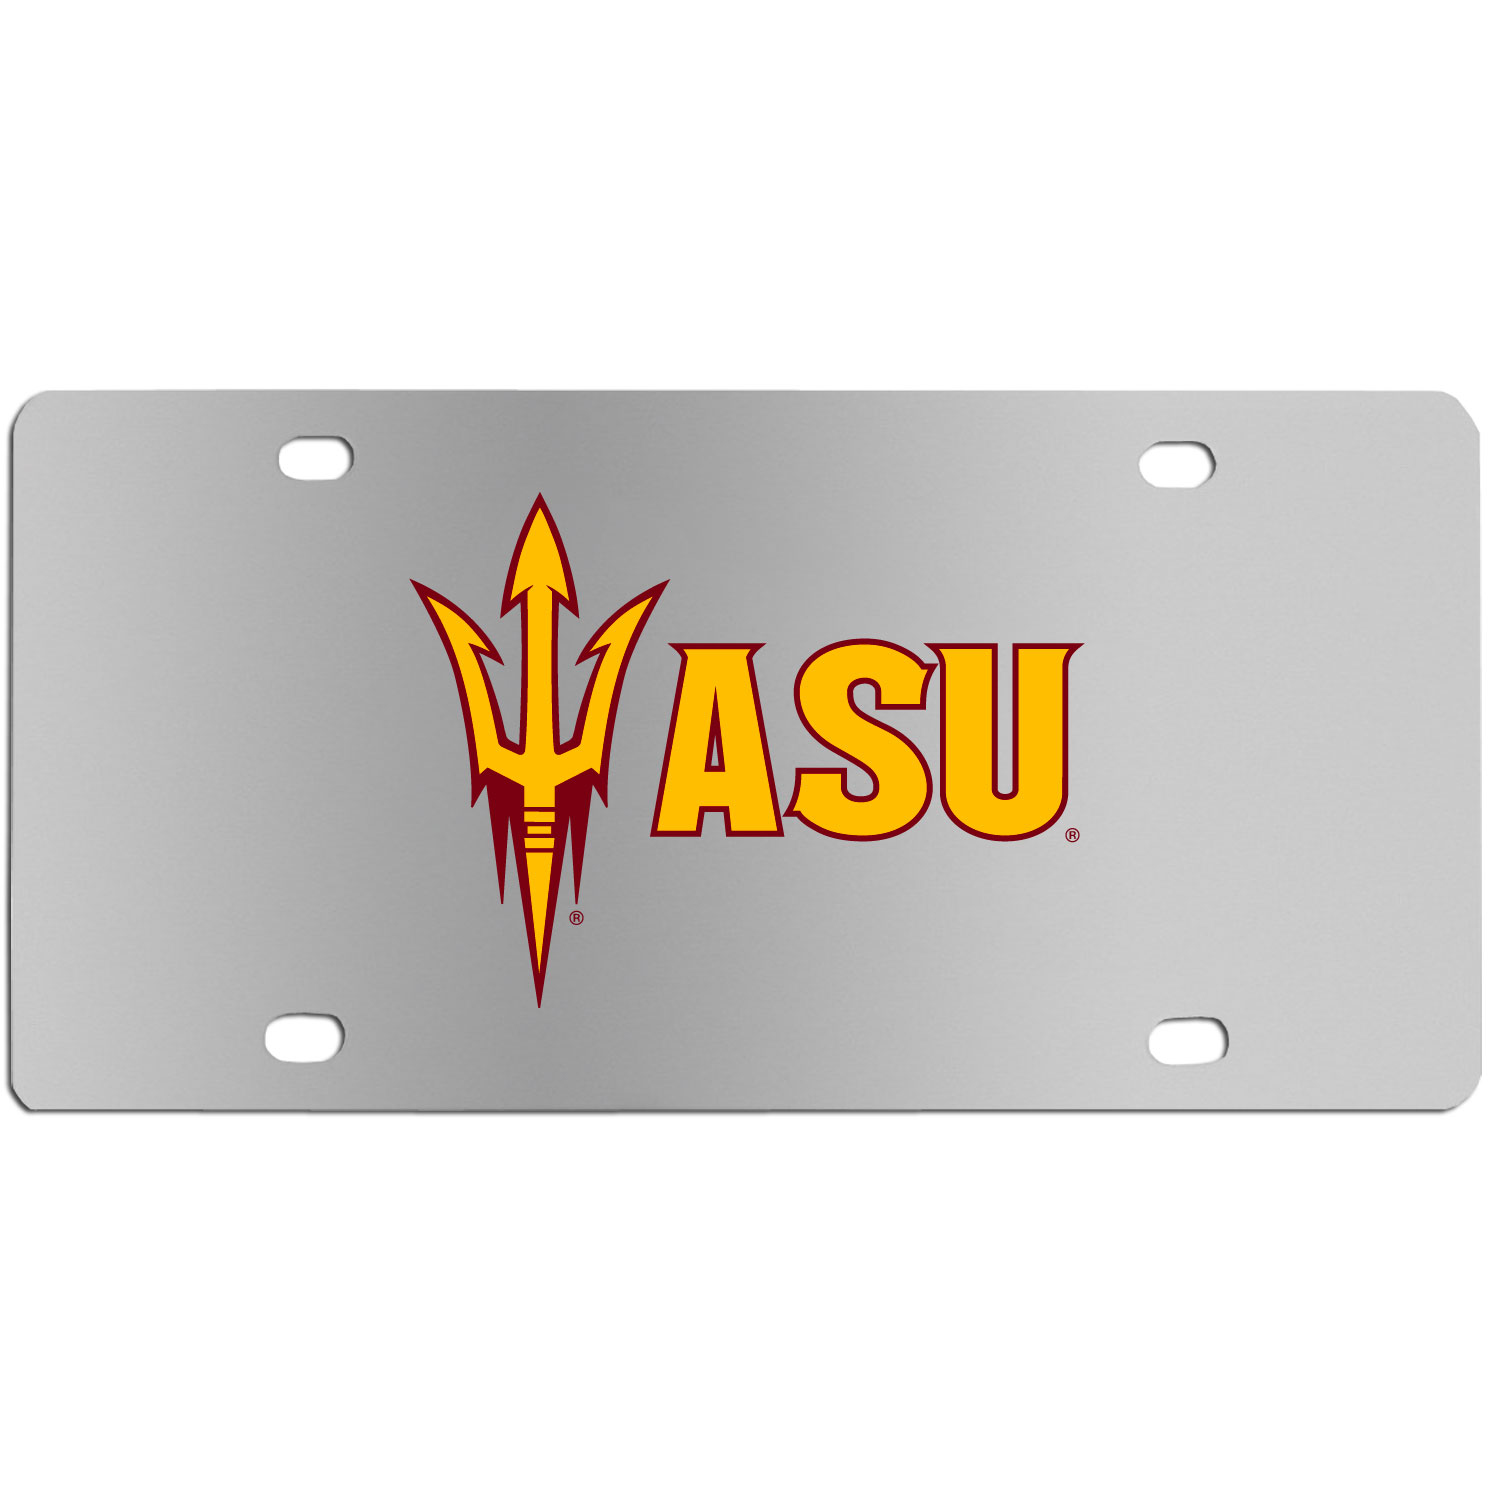 Arizona St. Sun Devils Steel License Plate Wall Plaque - This high-quality stainless steel license plate features a detailed team logo on a the polished surface. The attractive plate is perfect for wall mounting in your home or office to become the perfect die-hard Arizona St. Sun Devils fan decor.